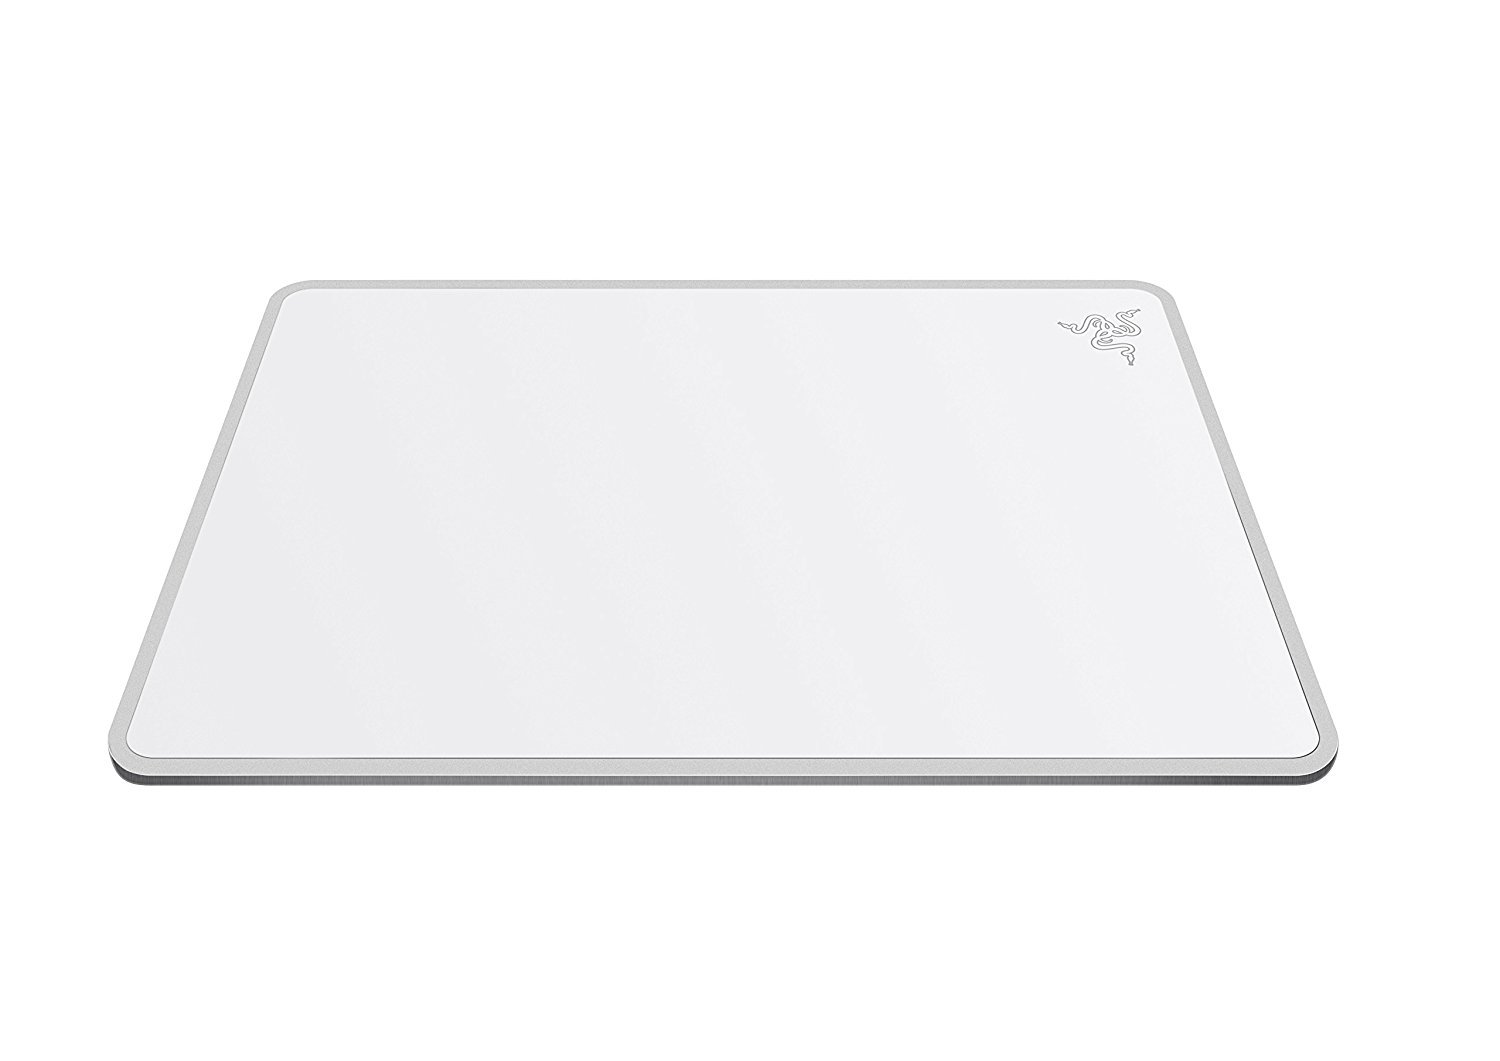 Razer Invicta Mercury Edition Mouse Mat - Hard Aircraft-Grade Alumninum Base Gaming Mouse Mat - Dual Control & Speed Surfaces